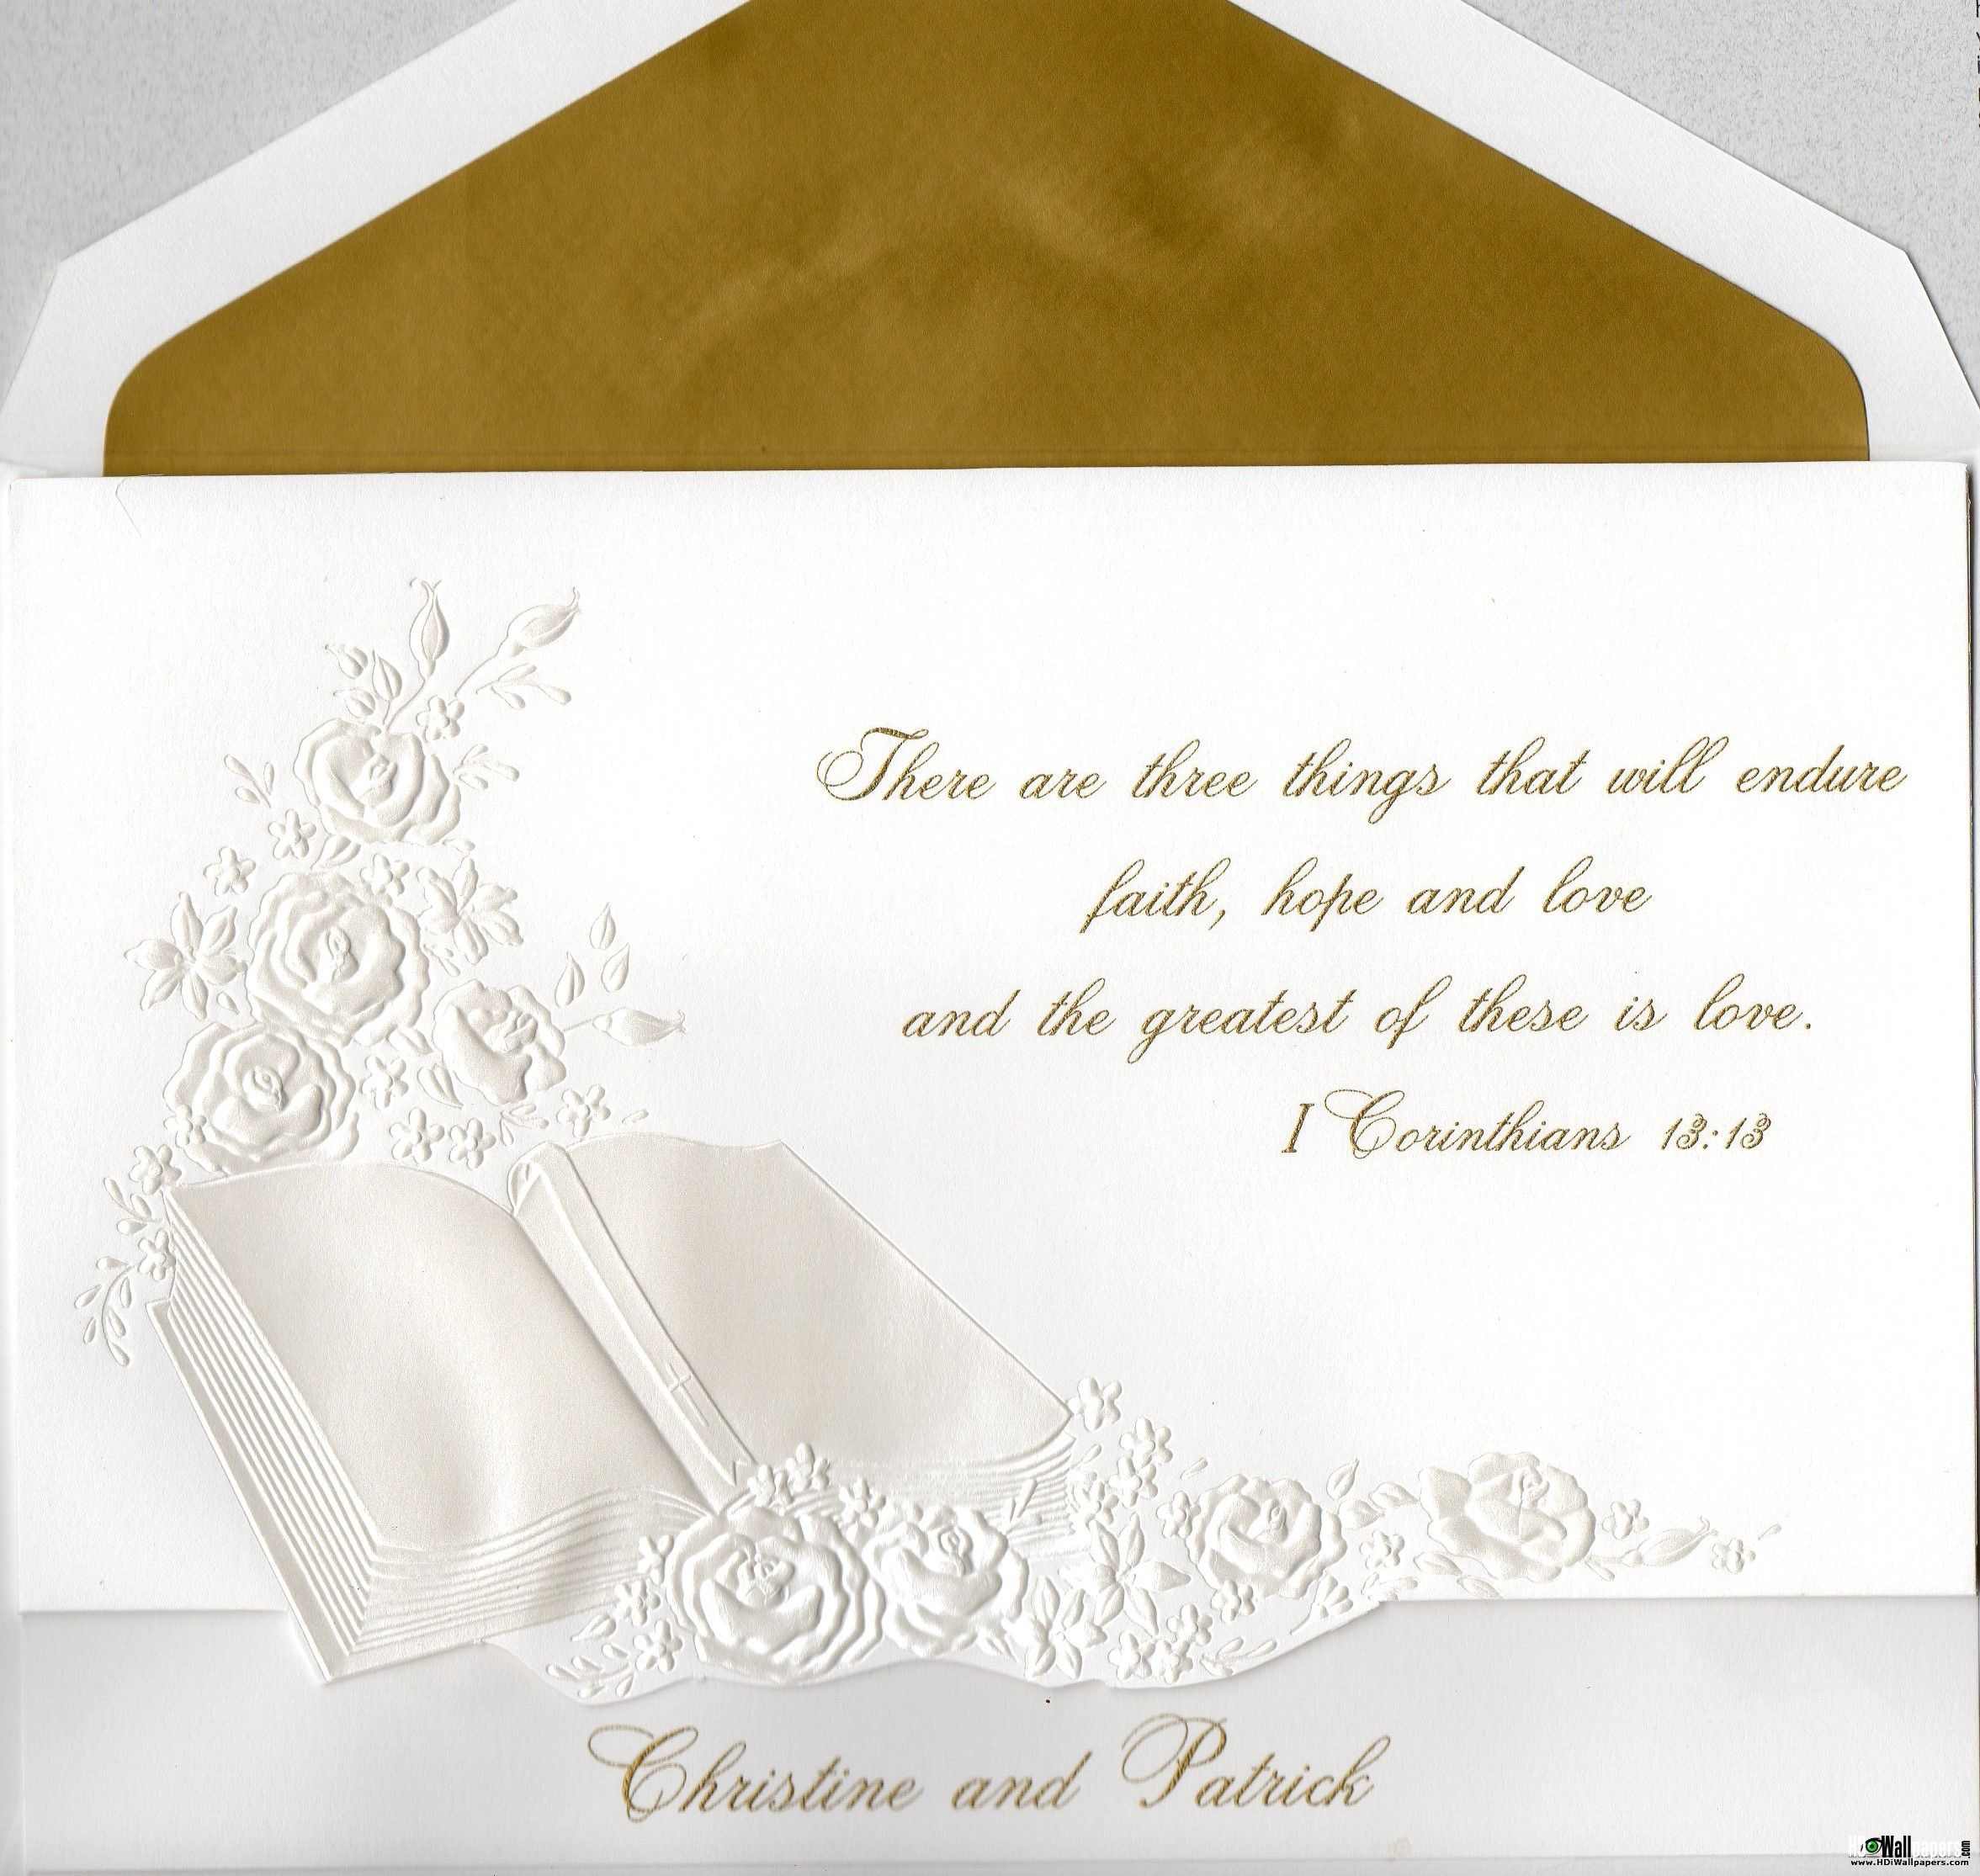 Biblical quotes for wedding cards quotesgram wedding invitation biblical quotes for wedding cards quotesgram wedding invitation card quotes wedding card quotes filmwisefo